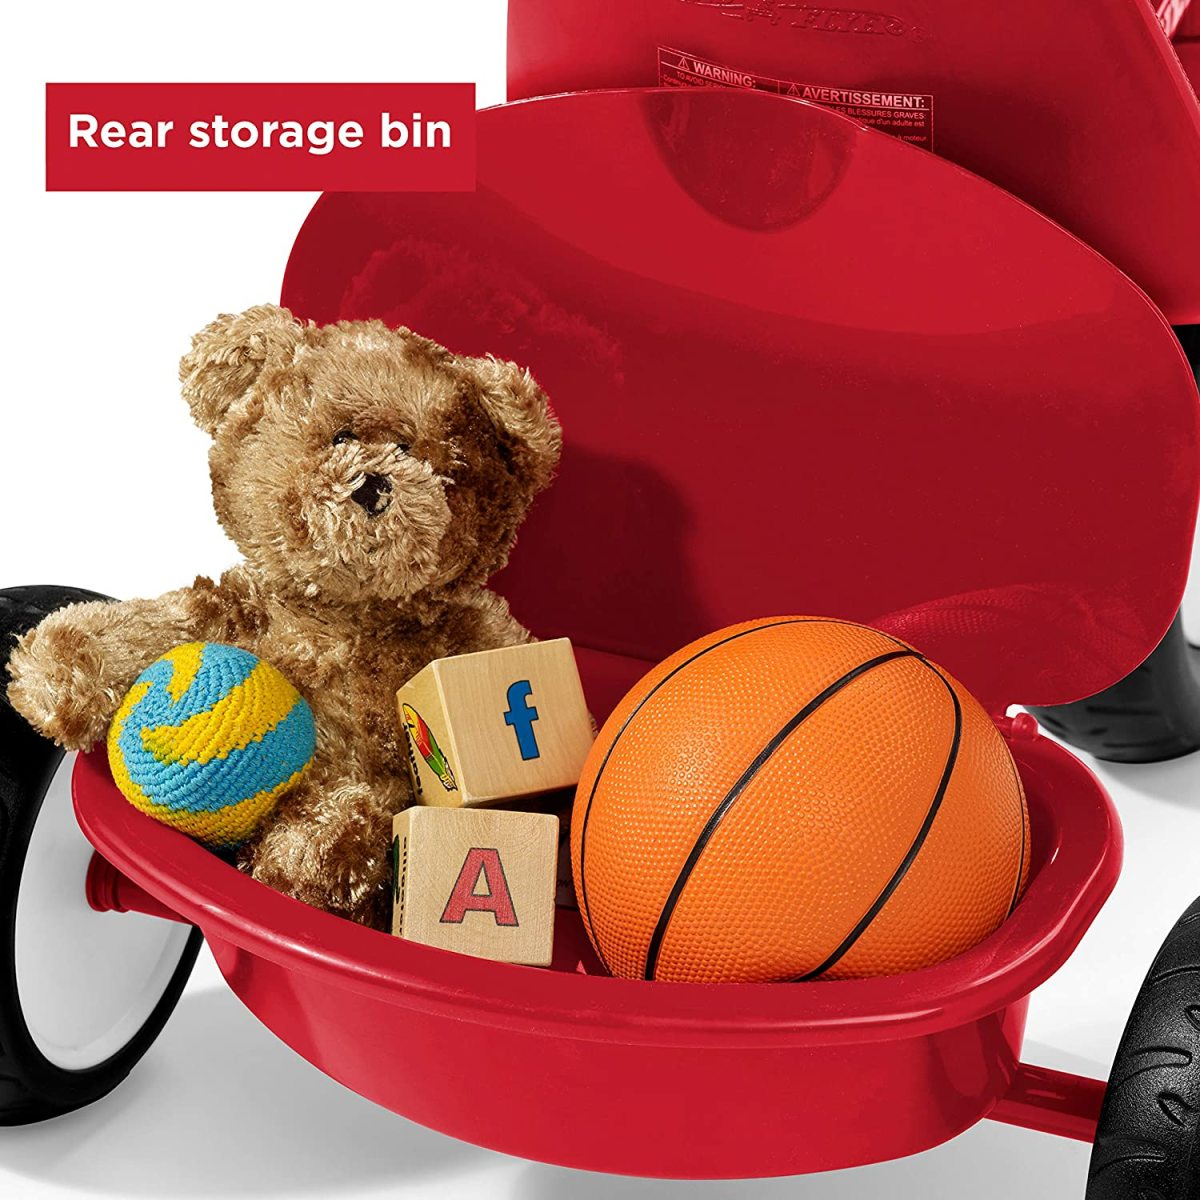 The rear, covered storage bin allows your child to take toys with him on the go!